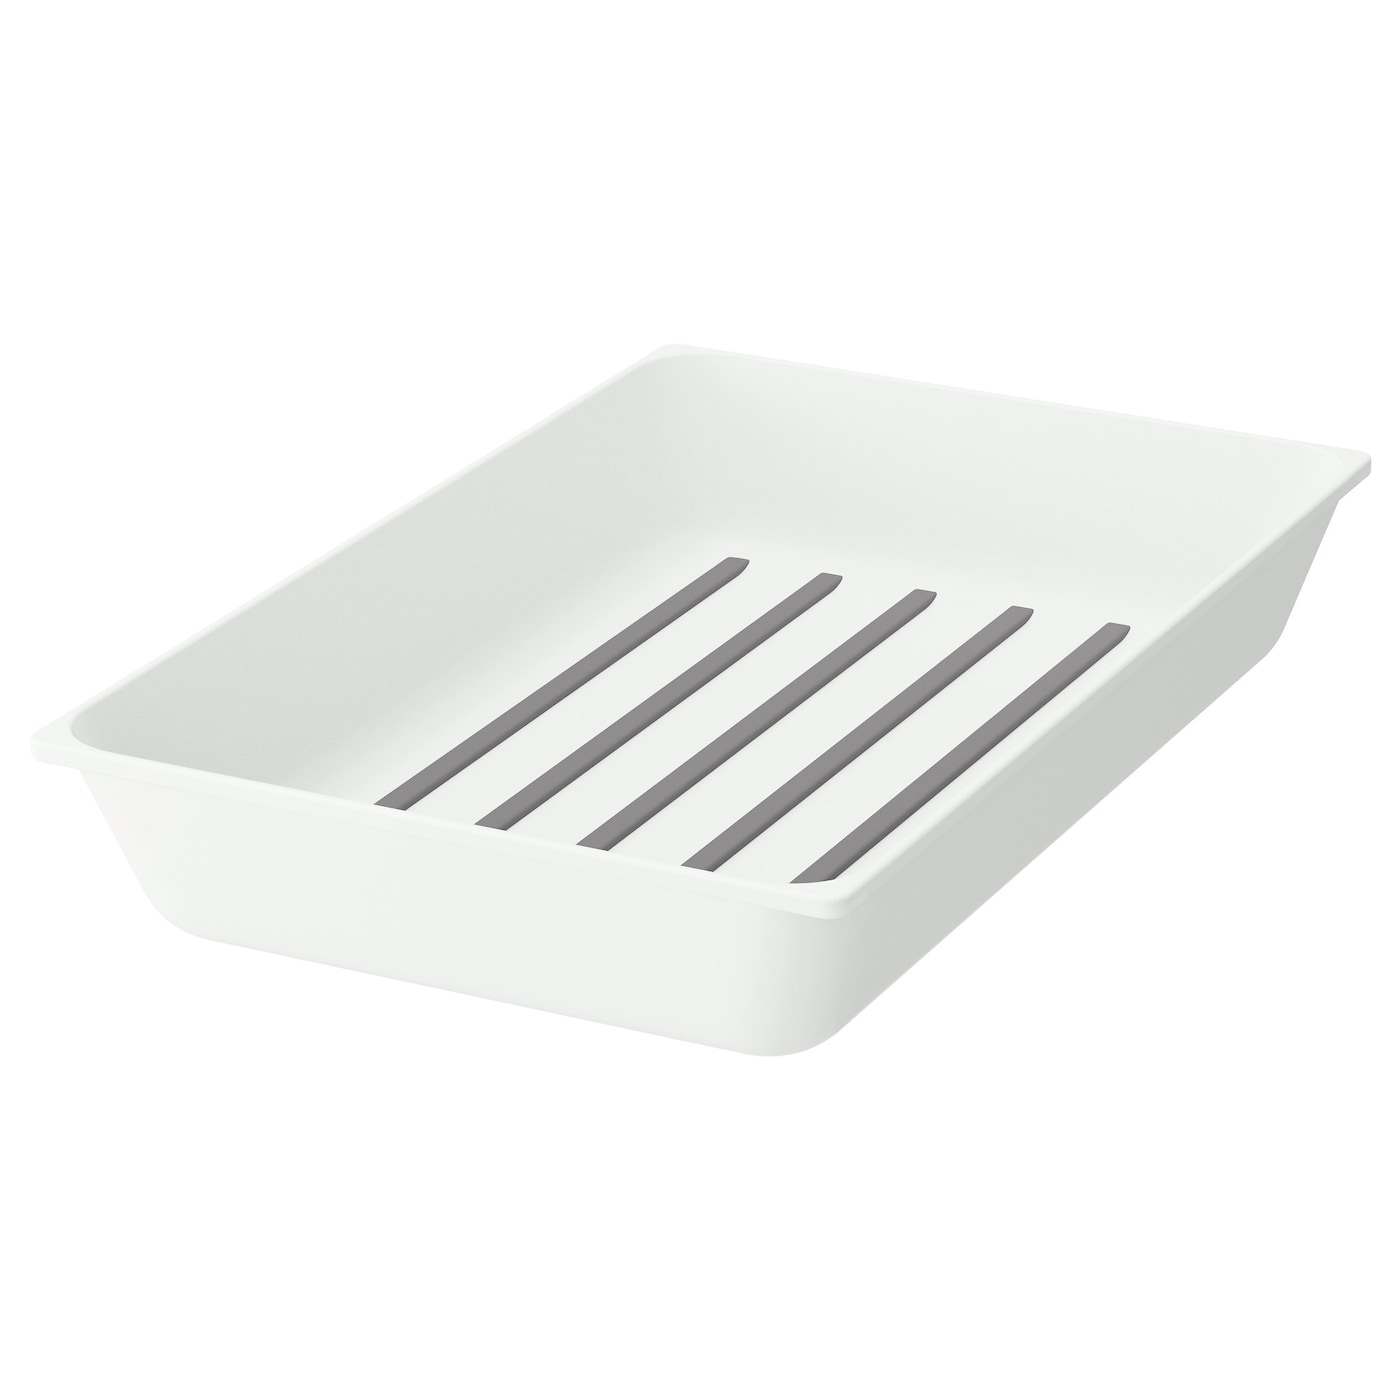 IKEA VARIERA utensil tray The plastic material and the rounded corners make cleaning easier.